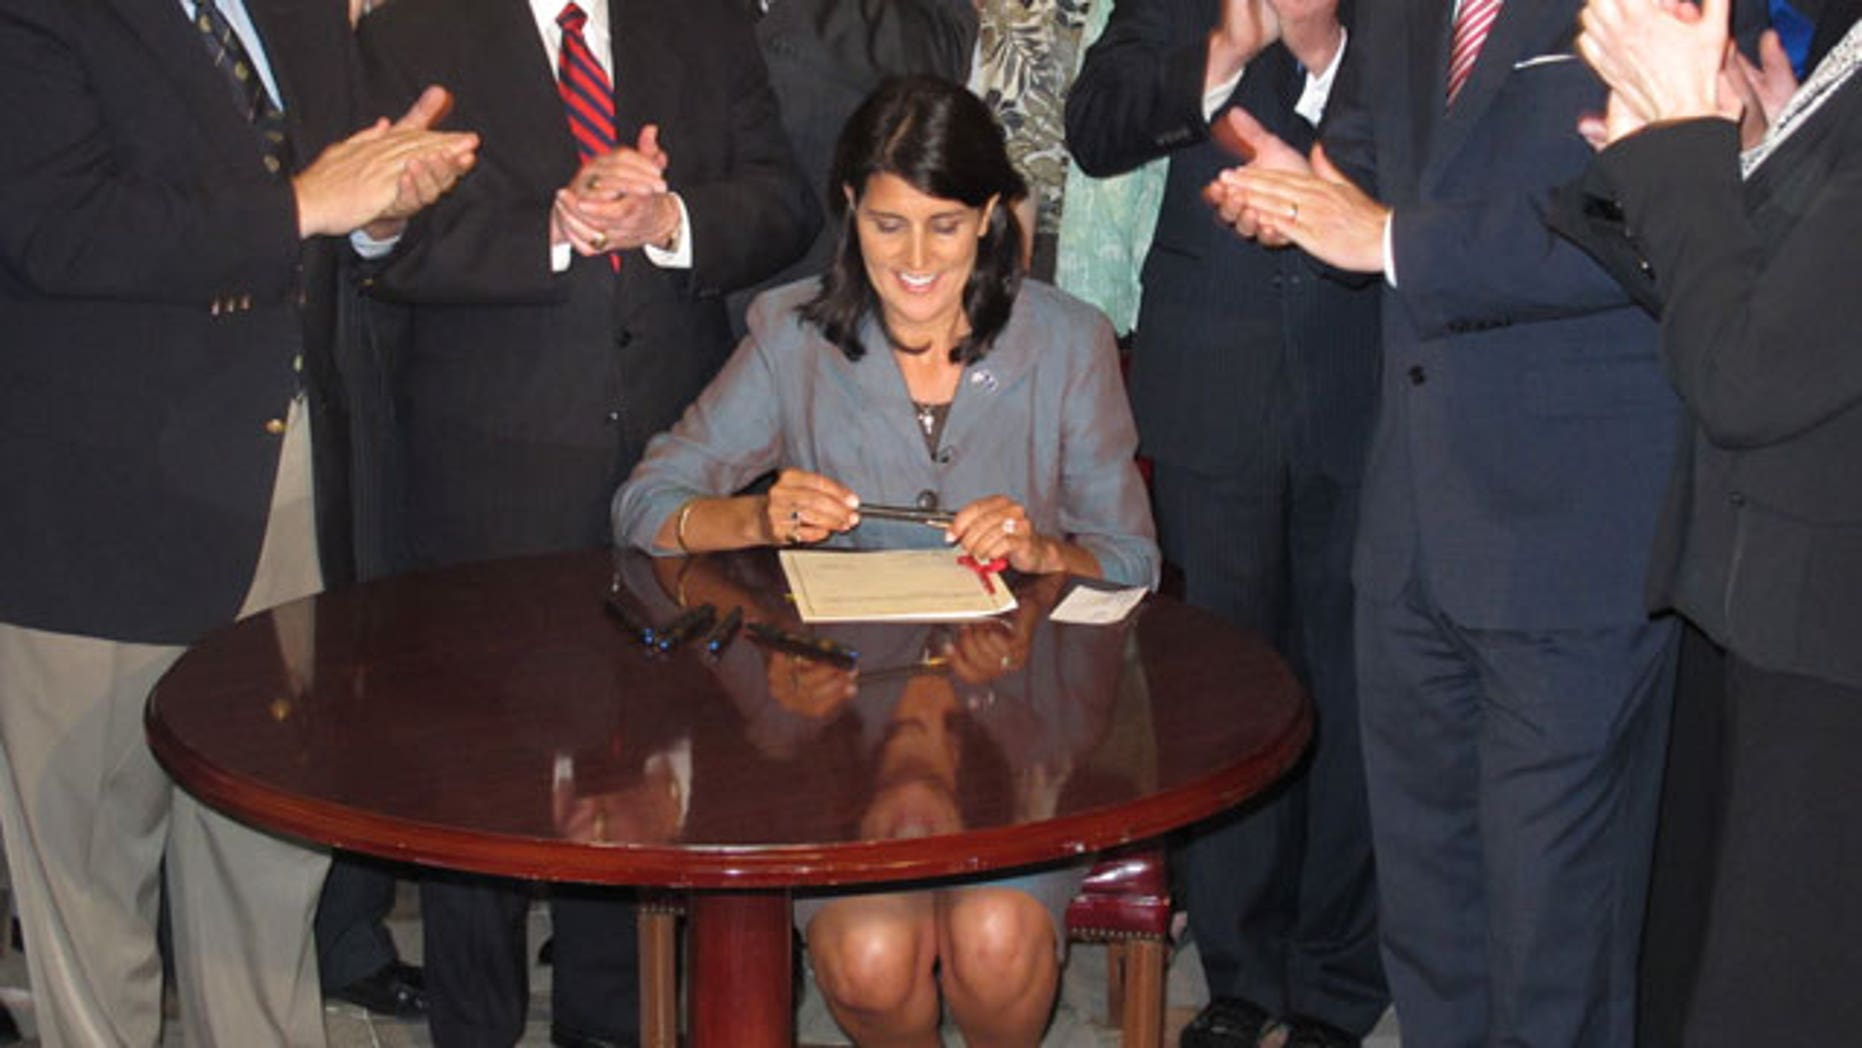 South Carolina Gov. Nikki Haley signs a bill that requires the state's General Assembly to record all its votes on budget items and final votes on other legislative matters, April 12,2011. (FNC)